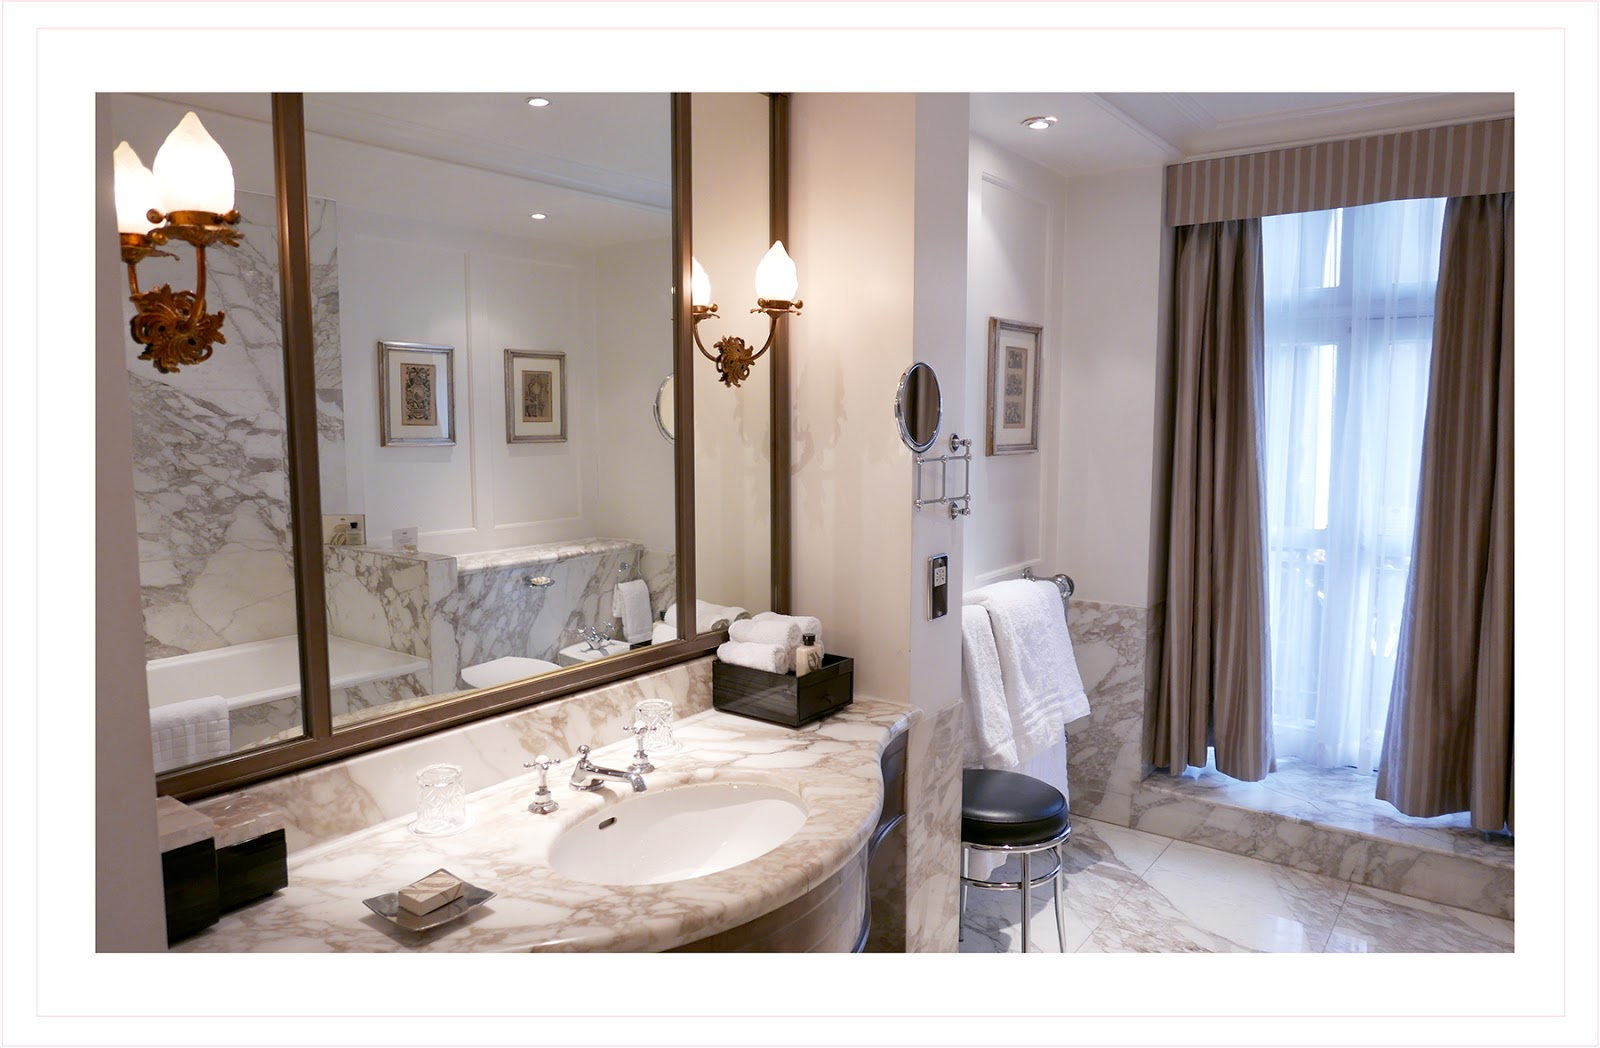 Euriental | luxury travel & style | Mandarin Oriental, Hyde Park